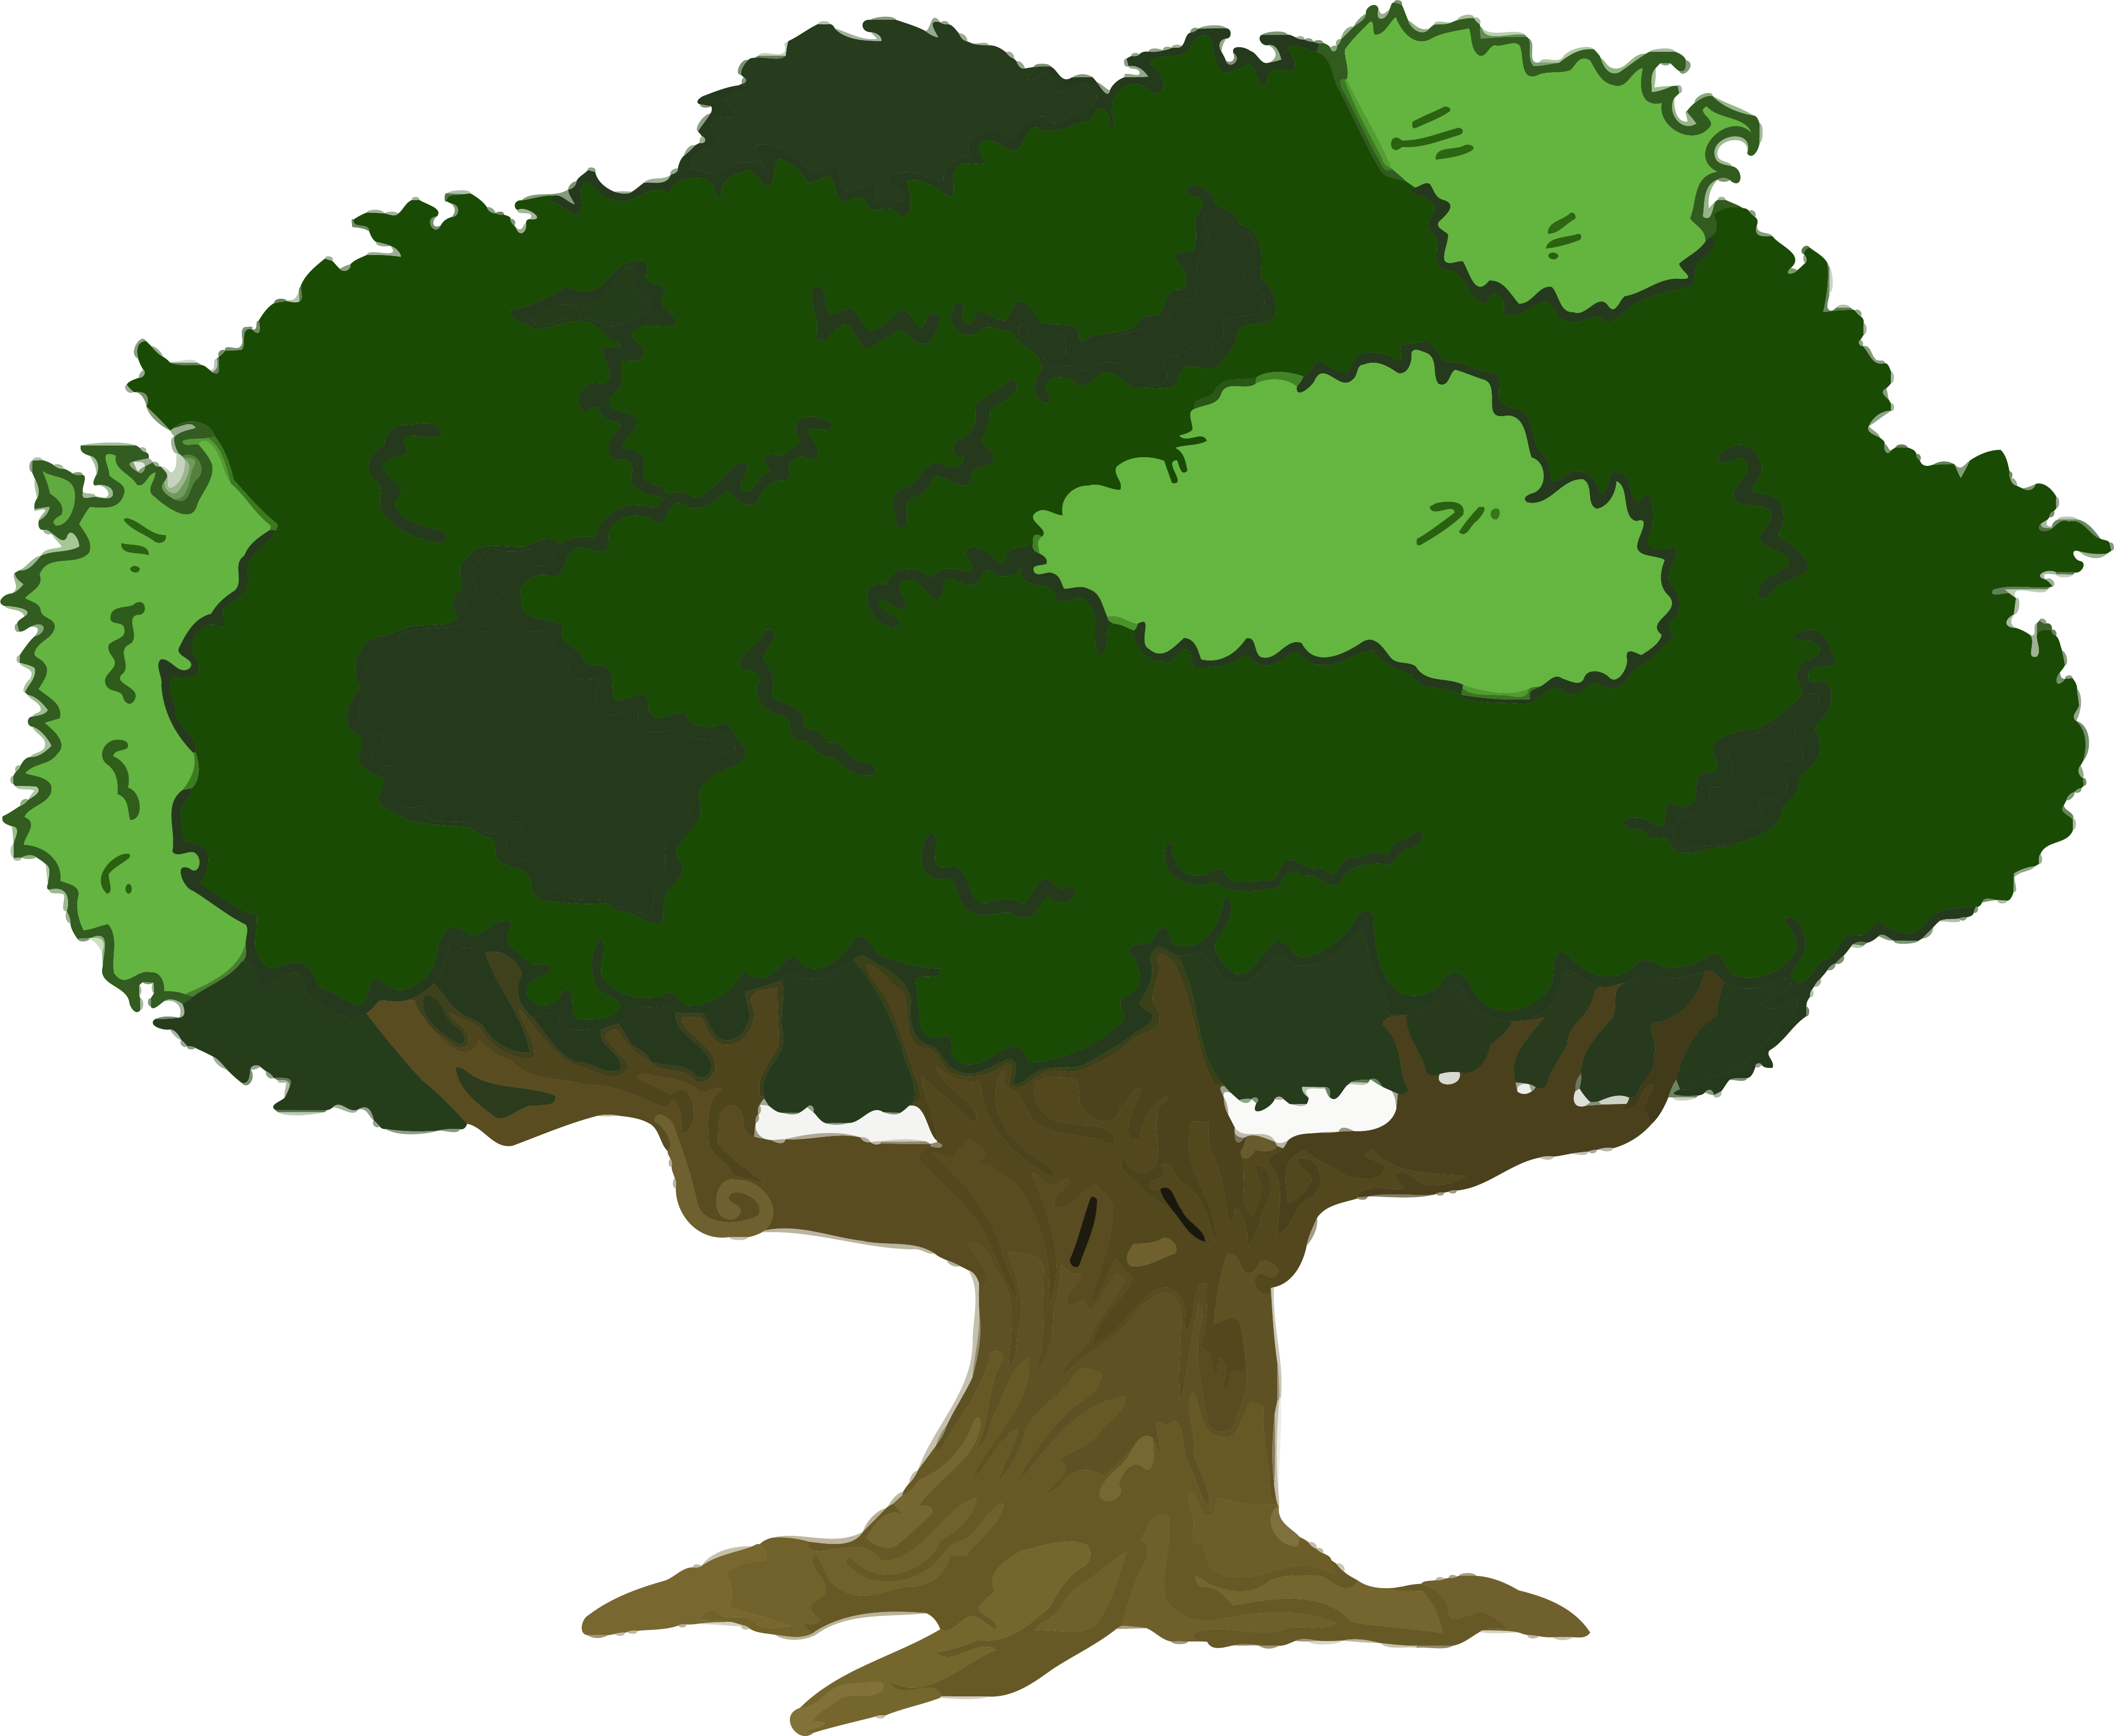 Tree Image Clip Art Online Royalty Free Clipart Png - Cartoon Tree With Branches (4161x3417)